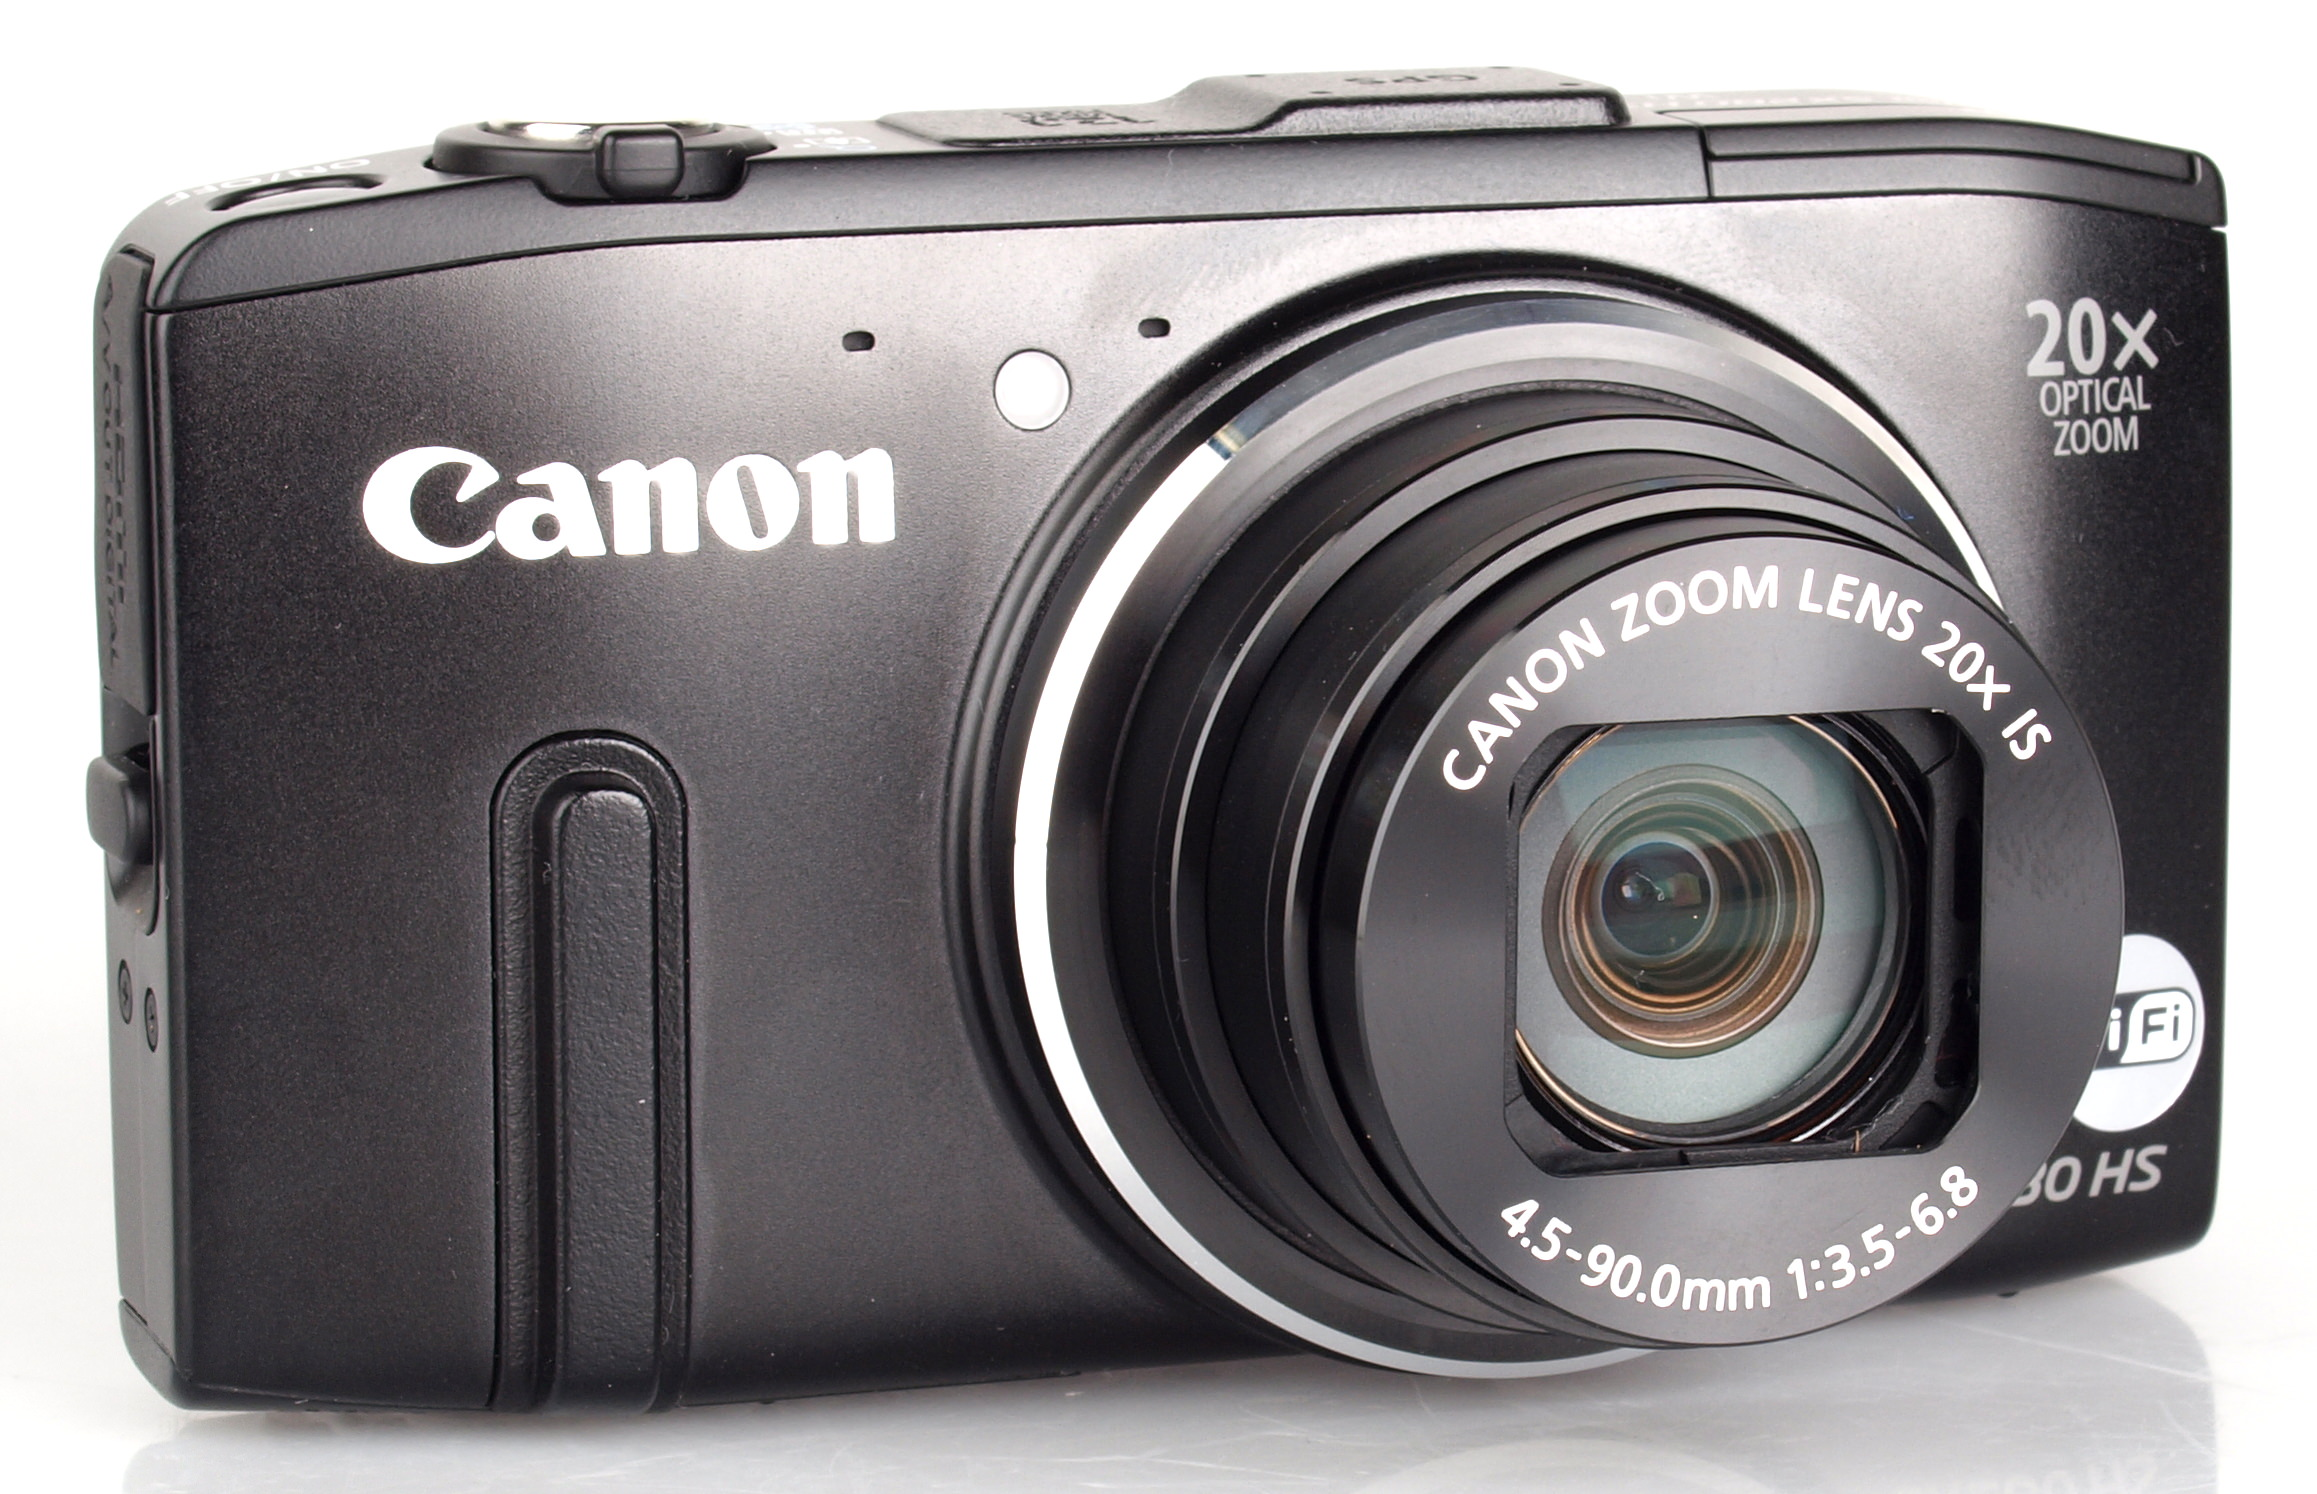 New Technology Articles: Canon PowerShot SX280 HS Review |Canon Powershot Sx280